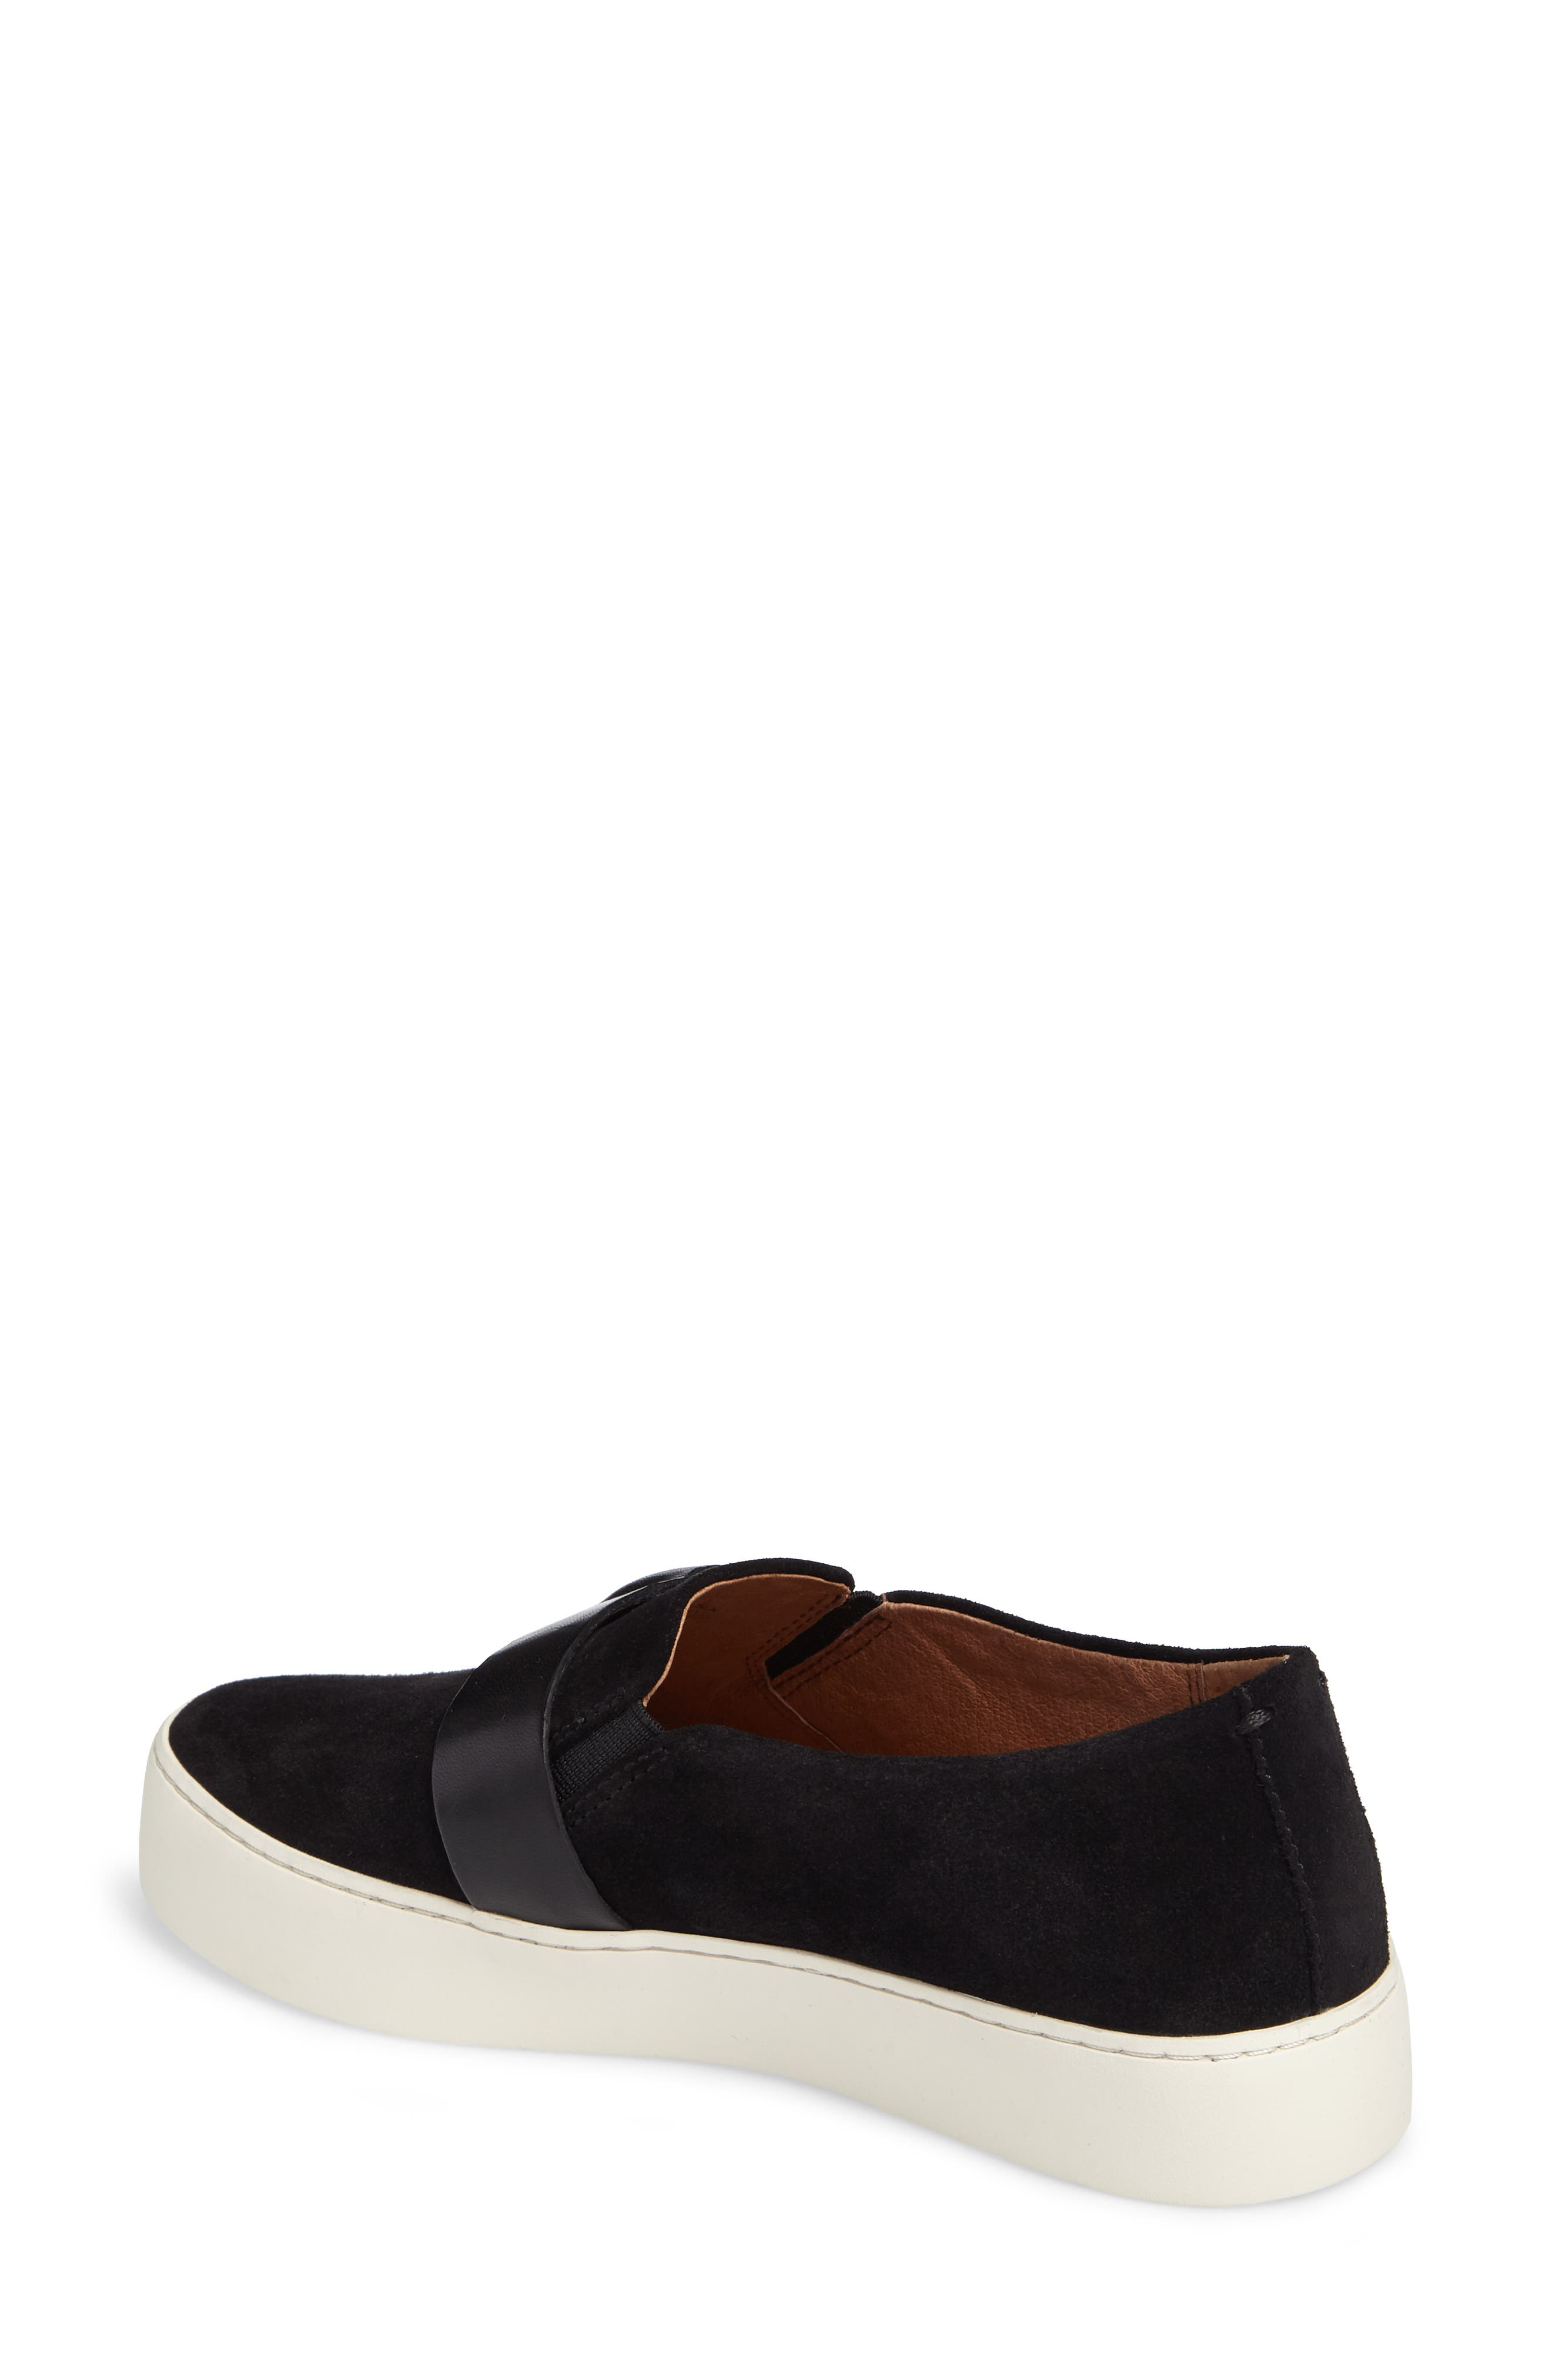 Lena Harness Slip-On Sneaker,                             Alternate thumbnail 2, color,                             001